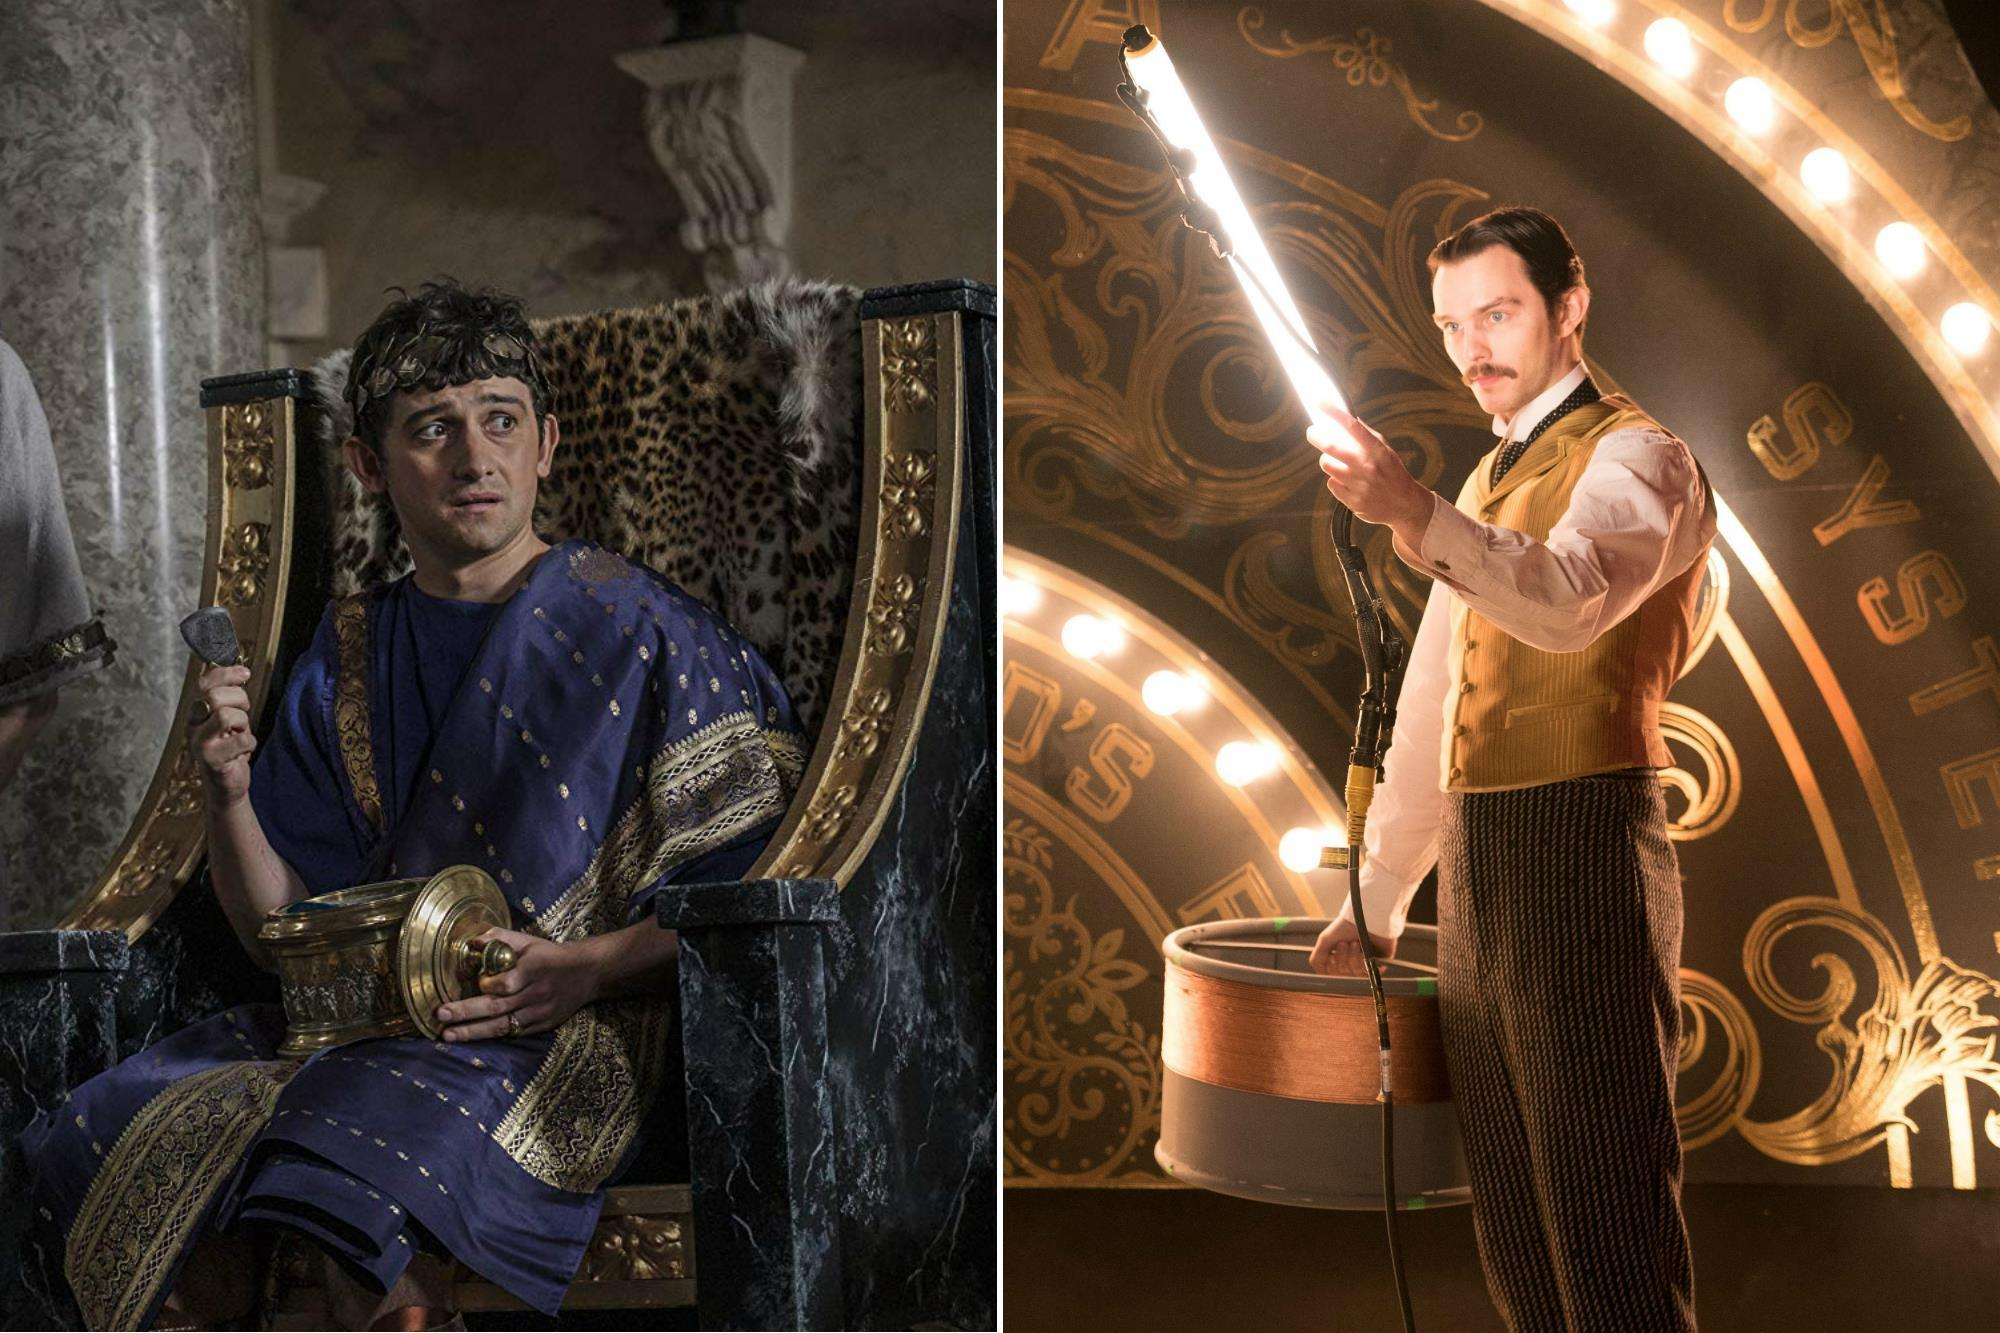 UK box office preview: 'Horrible Histories', 'The Current